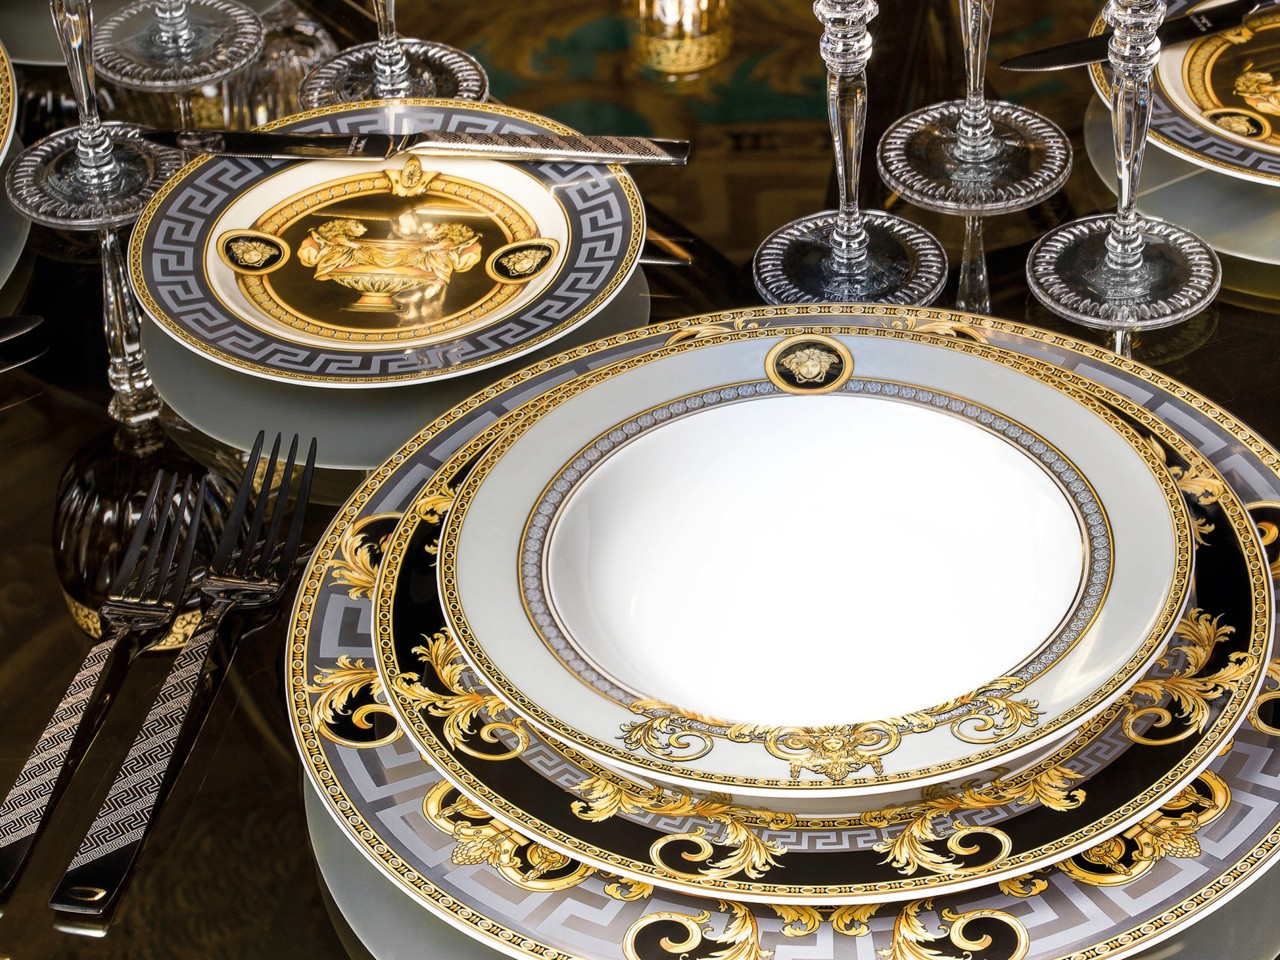 Versace Prestige Gala dinner table setting showing 3 stacked plates with side plate, Versace flatware and Versace stemware on dark polished table.